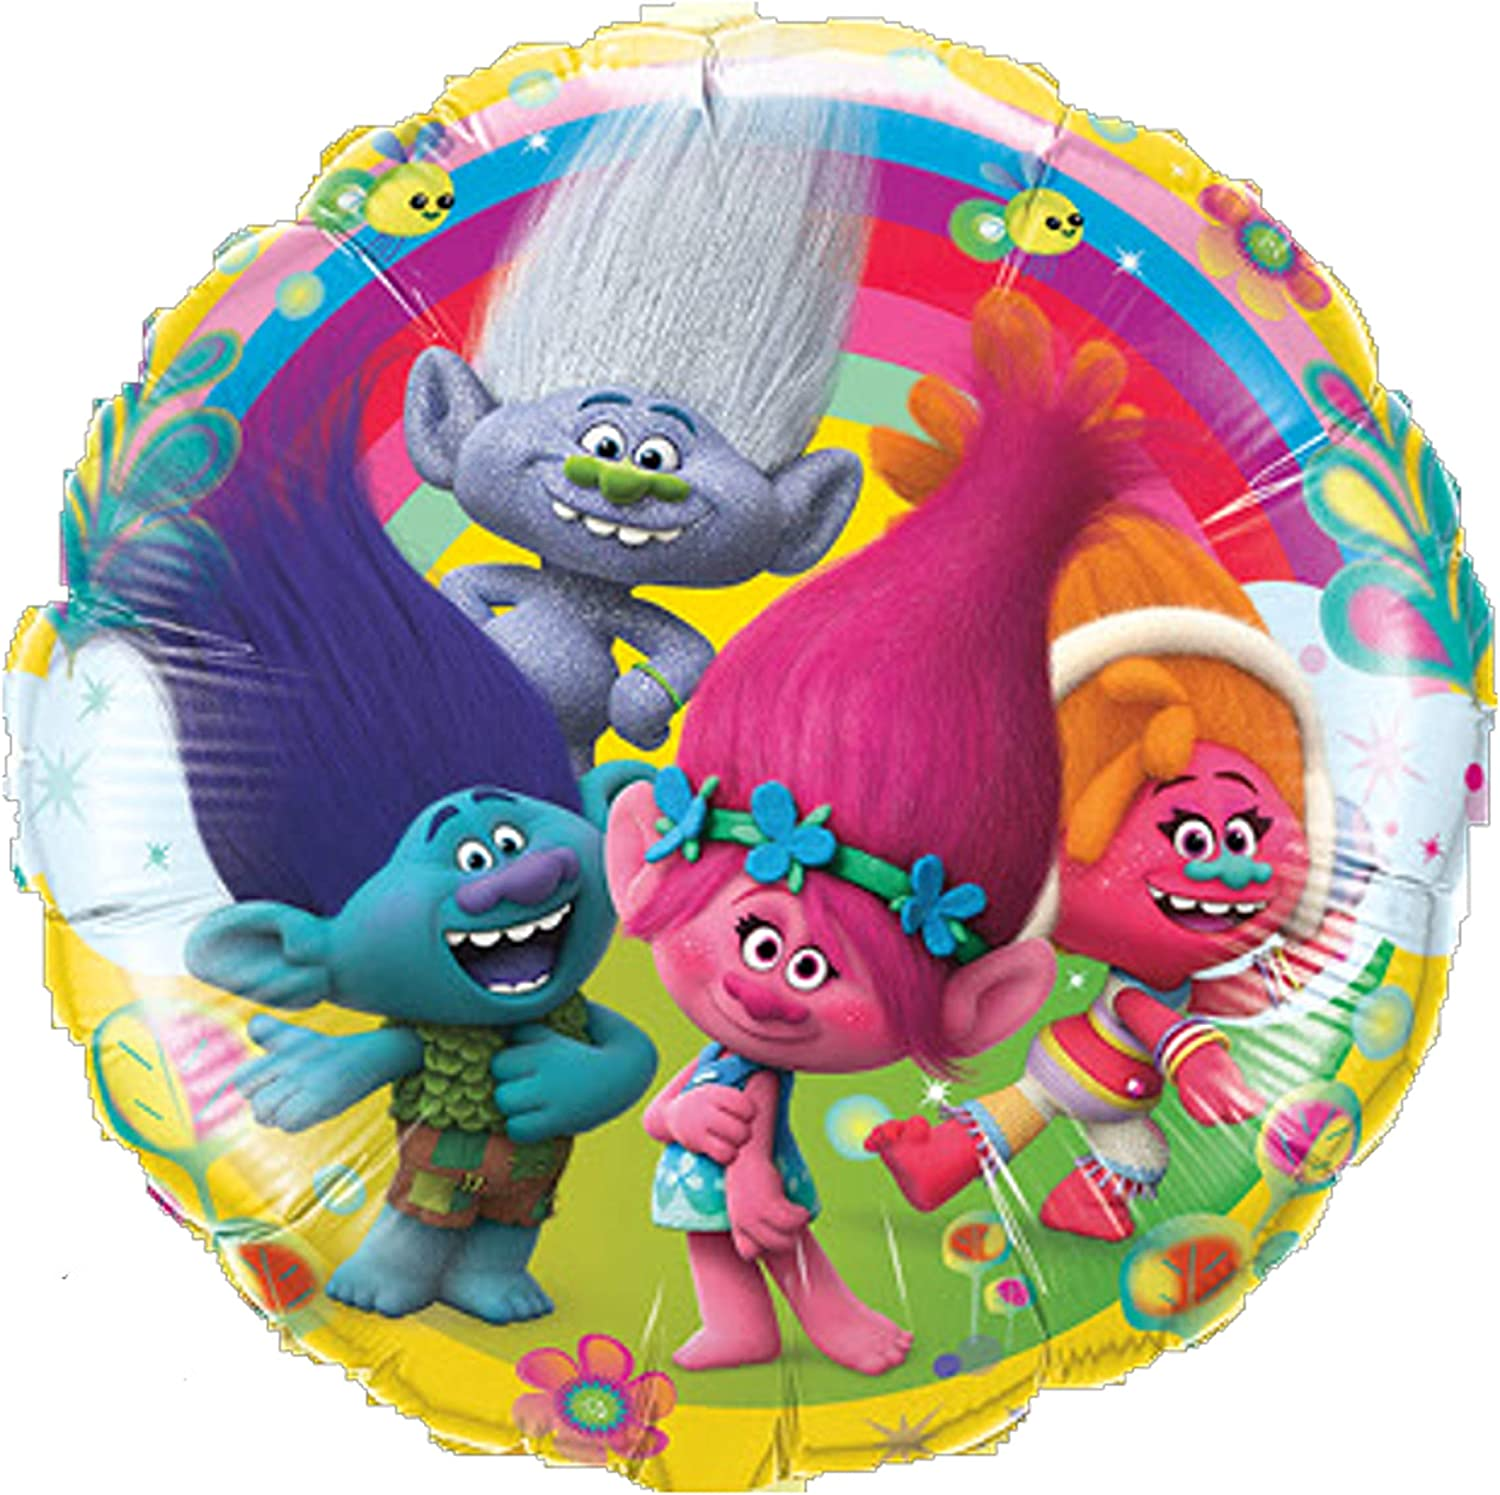 Trolls Poppy Party Supplies Balloon Bouquet Decorations